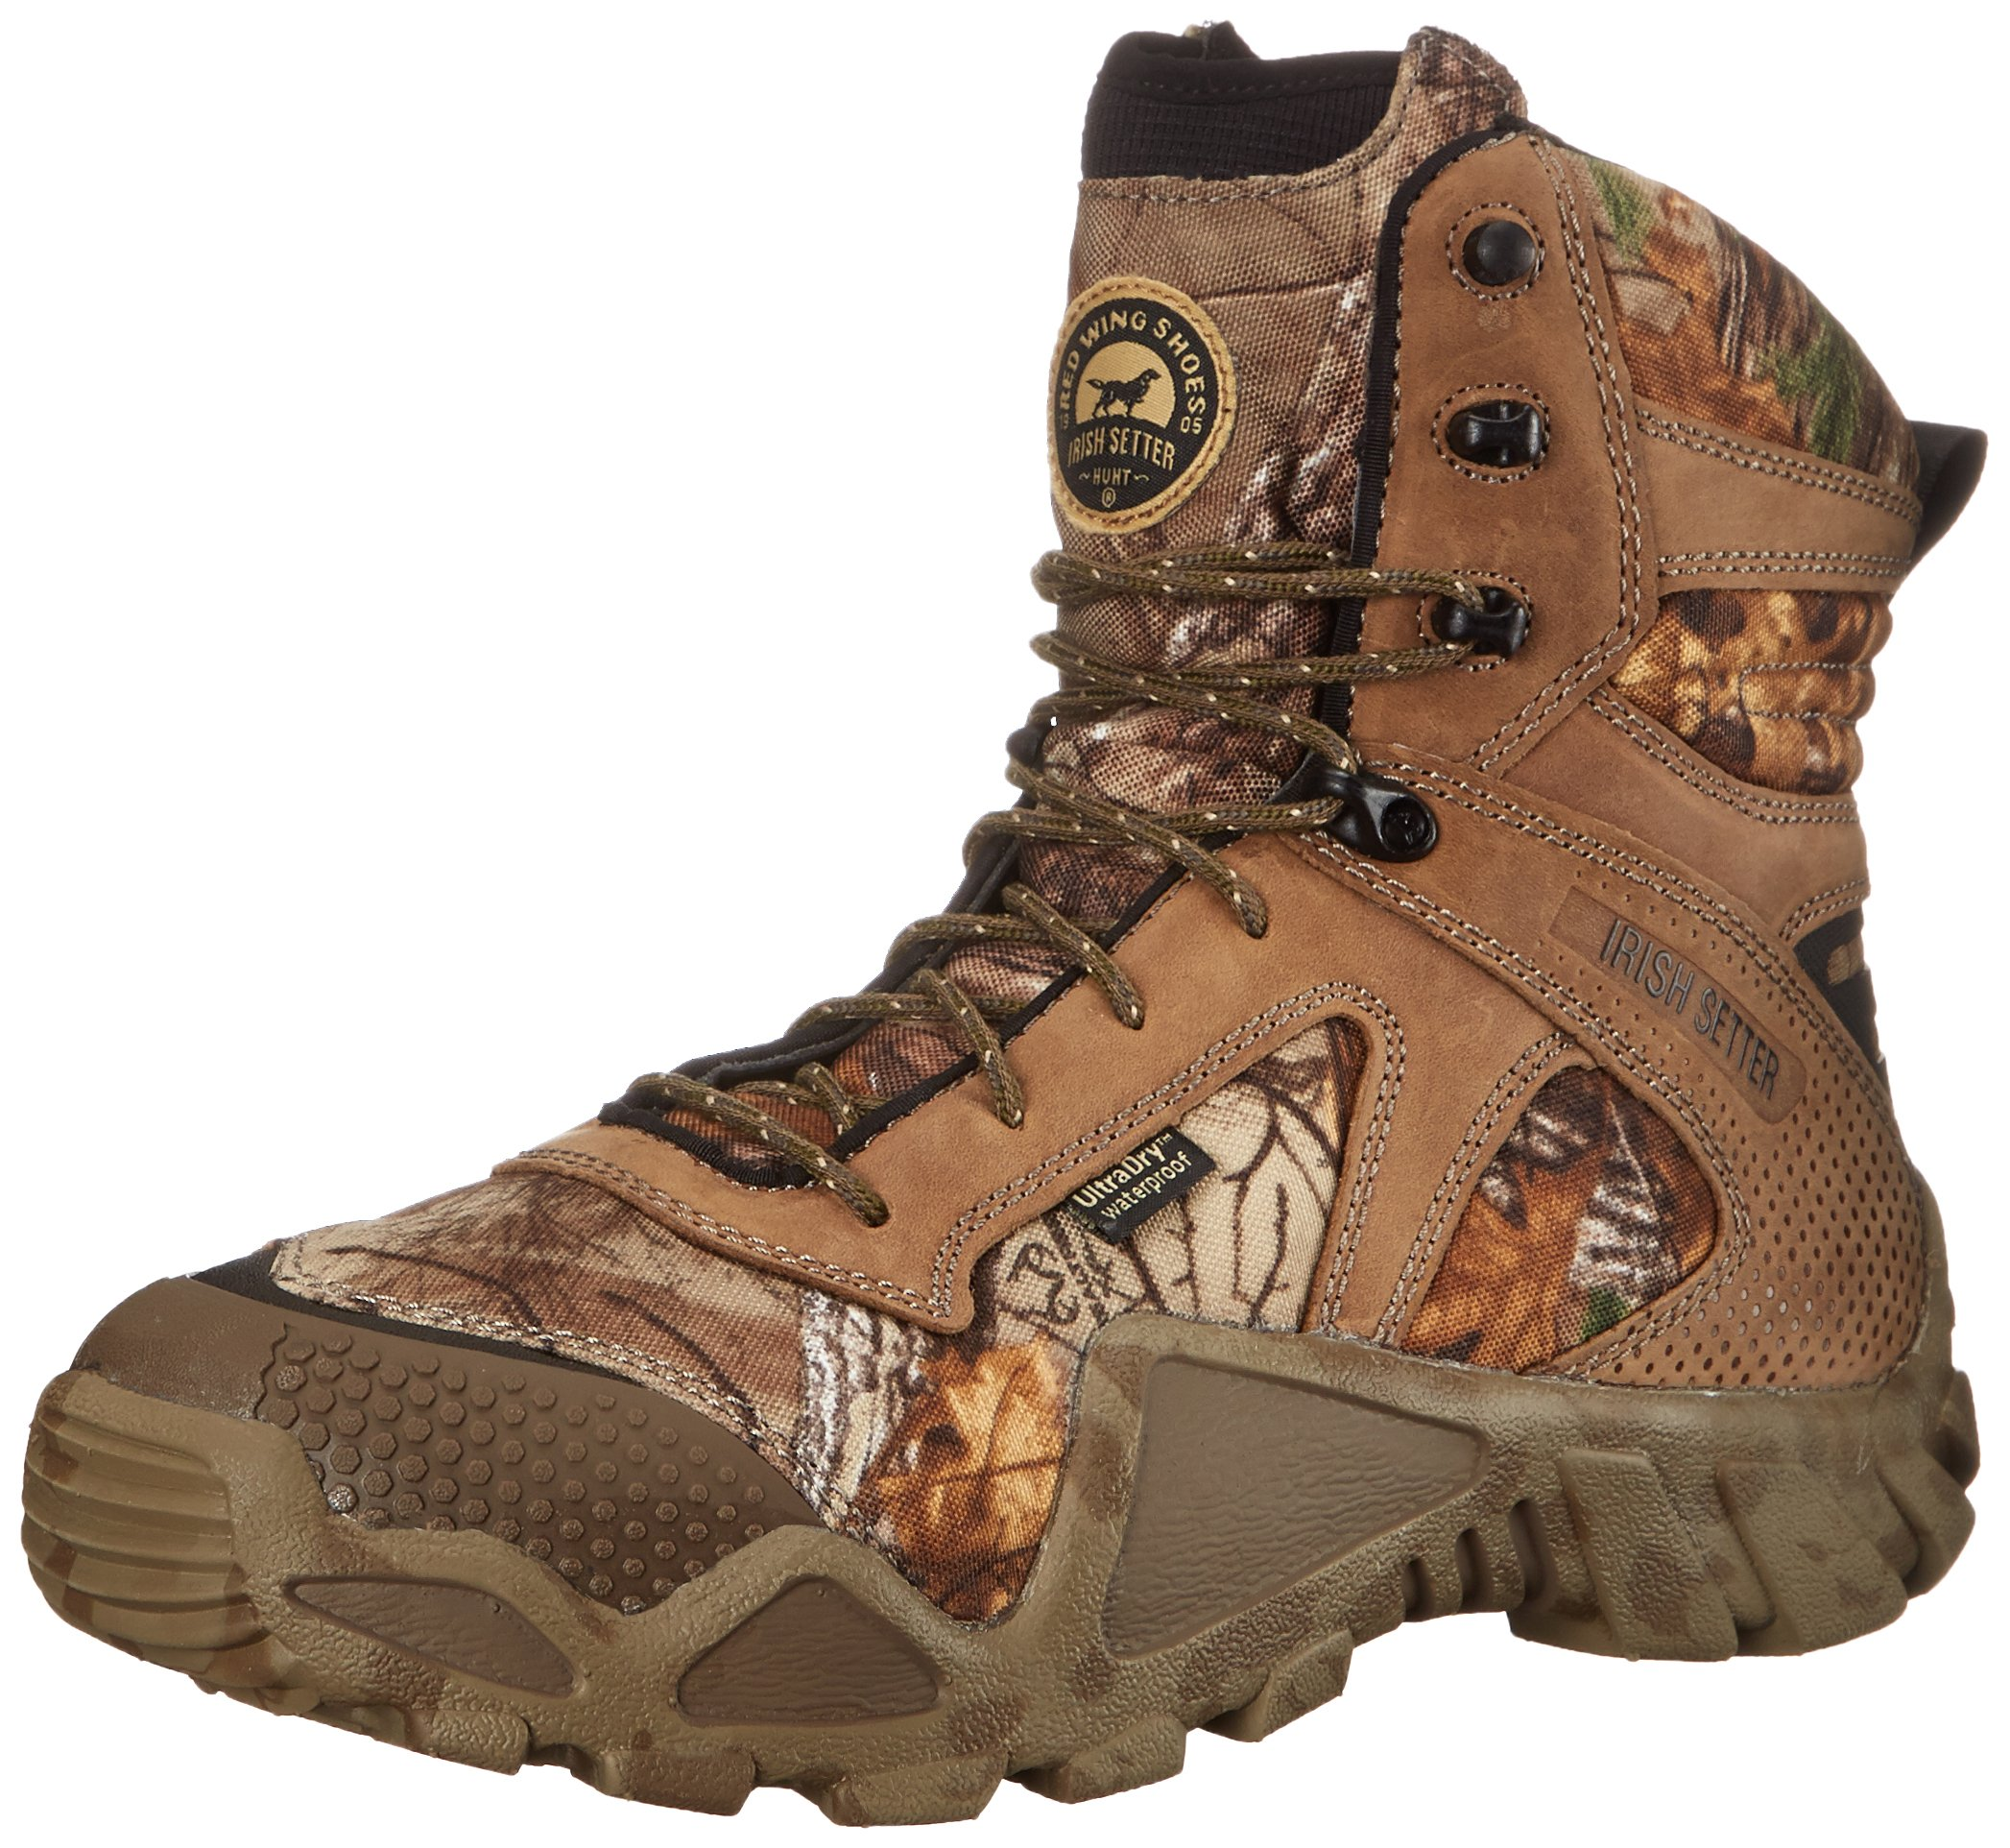 Irish Setter Men's 2873 Vaprtrek 8'' Hunting Boot,Realtree Xtra Camouflage,11 EE US